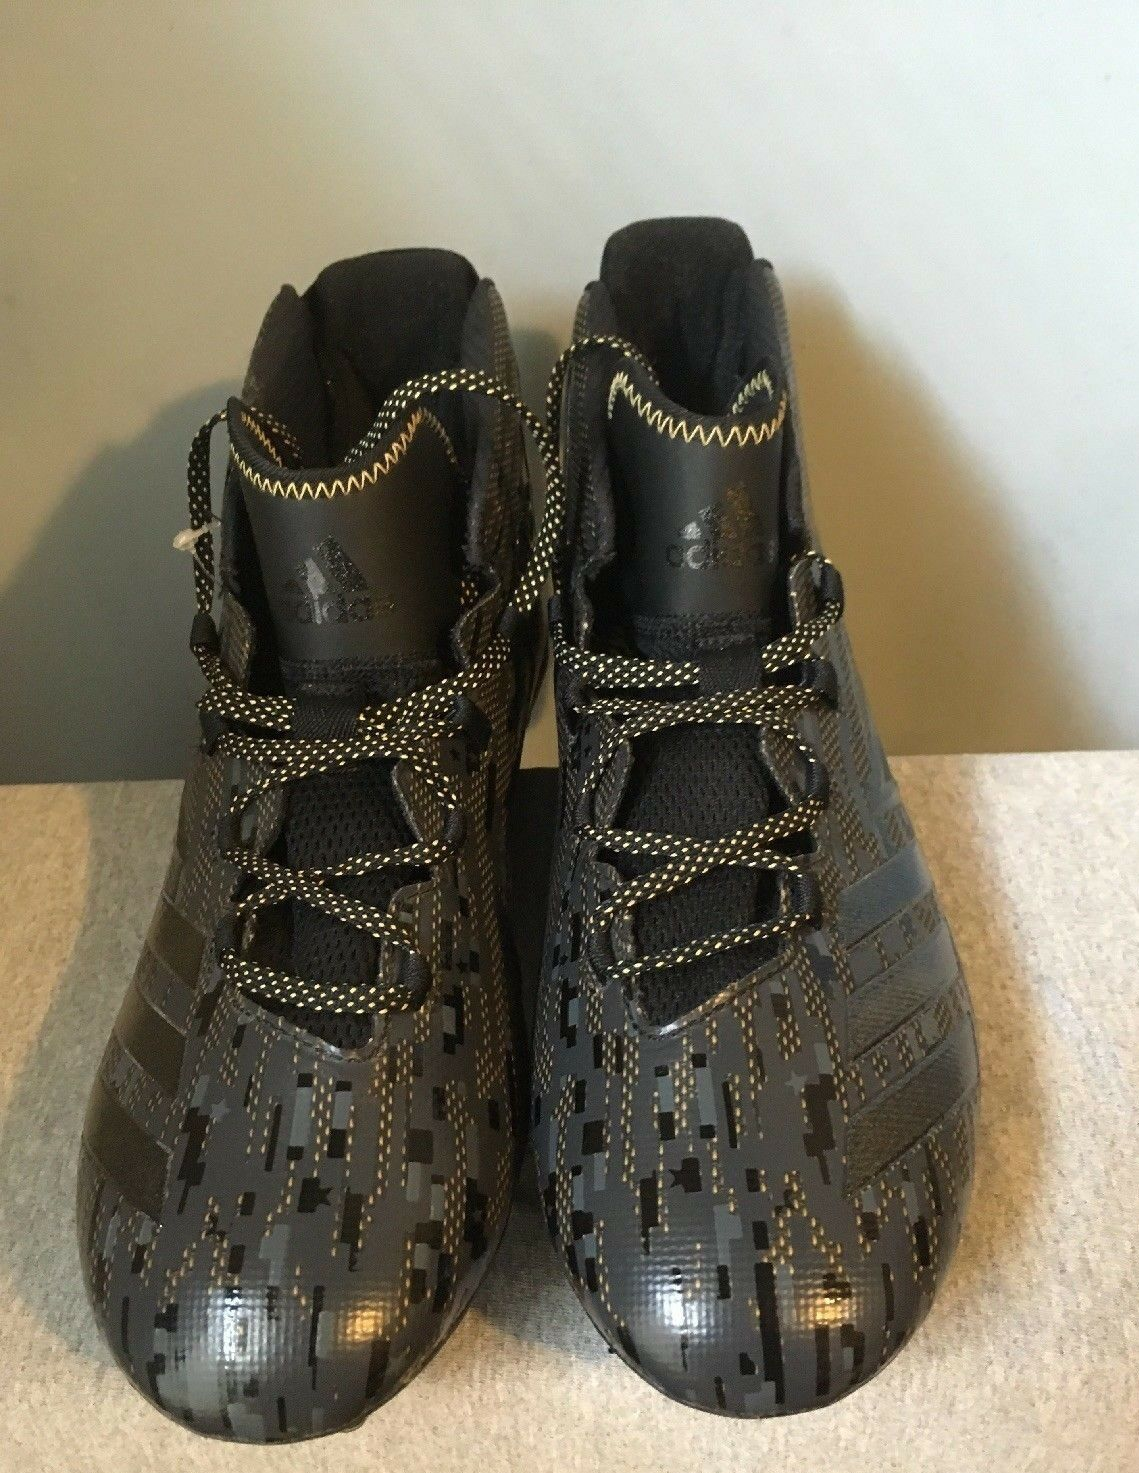 BRAND NEW MEN'S ADIDAS FREAK MID FOOTBALL CLEATS BUILT WITH KEVLAR - SIZE 10.5